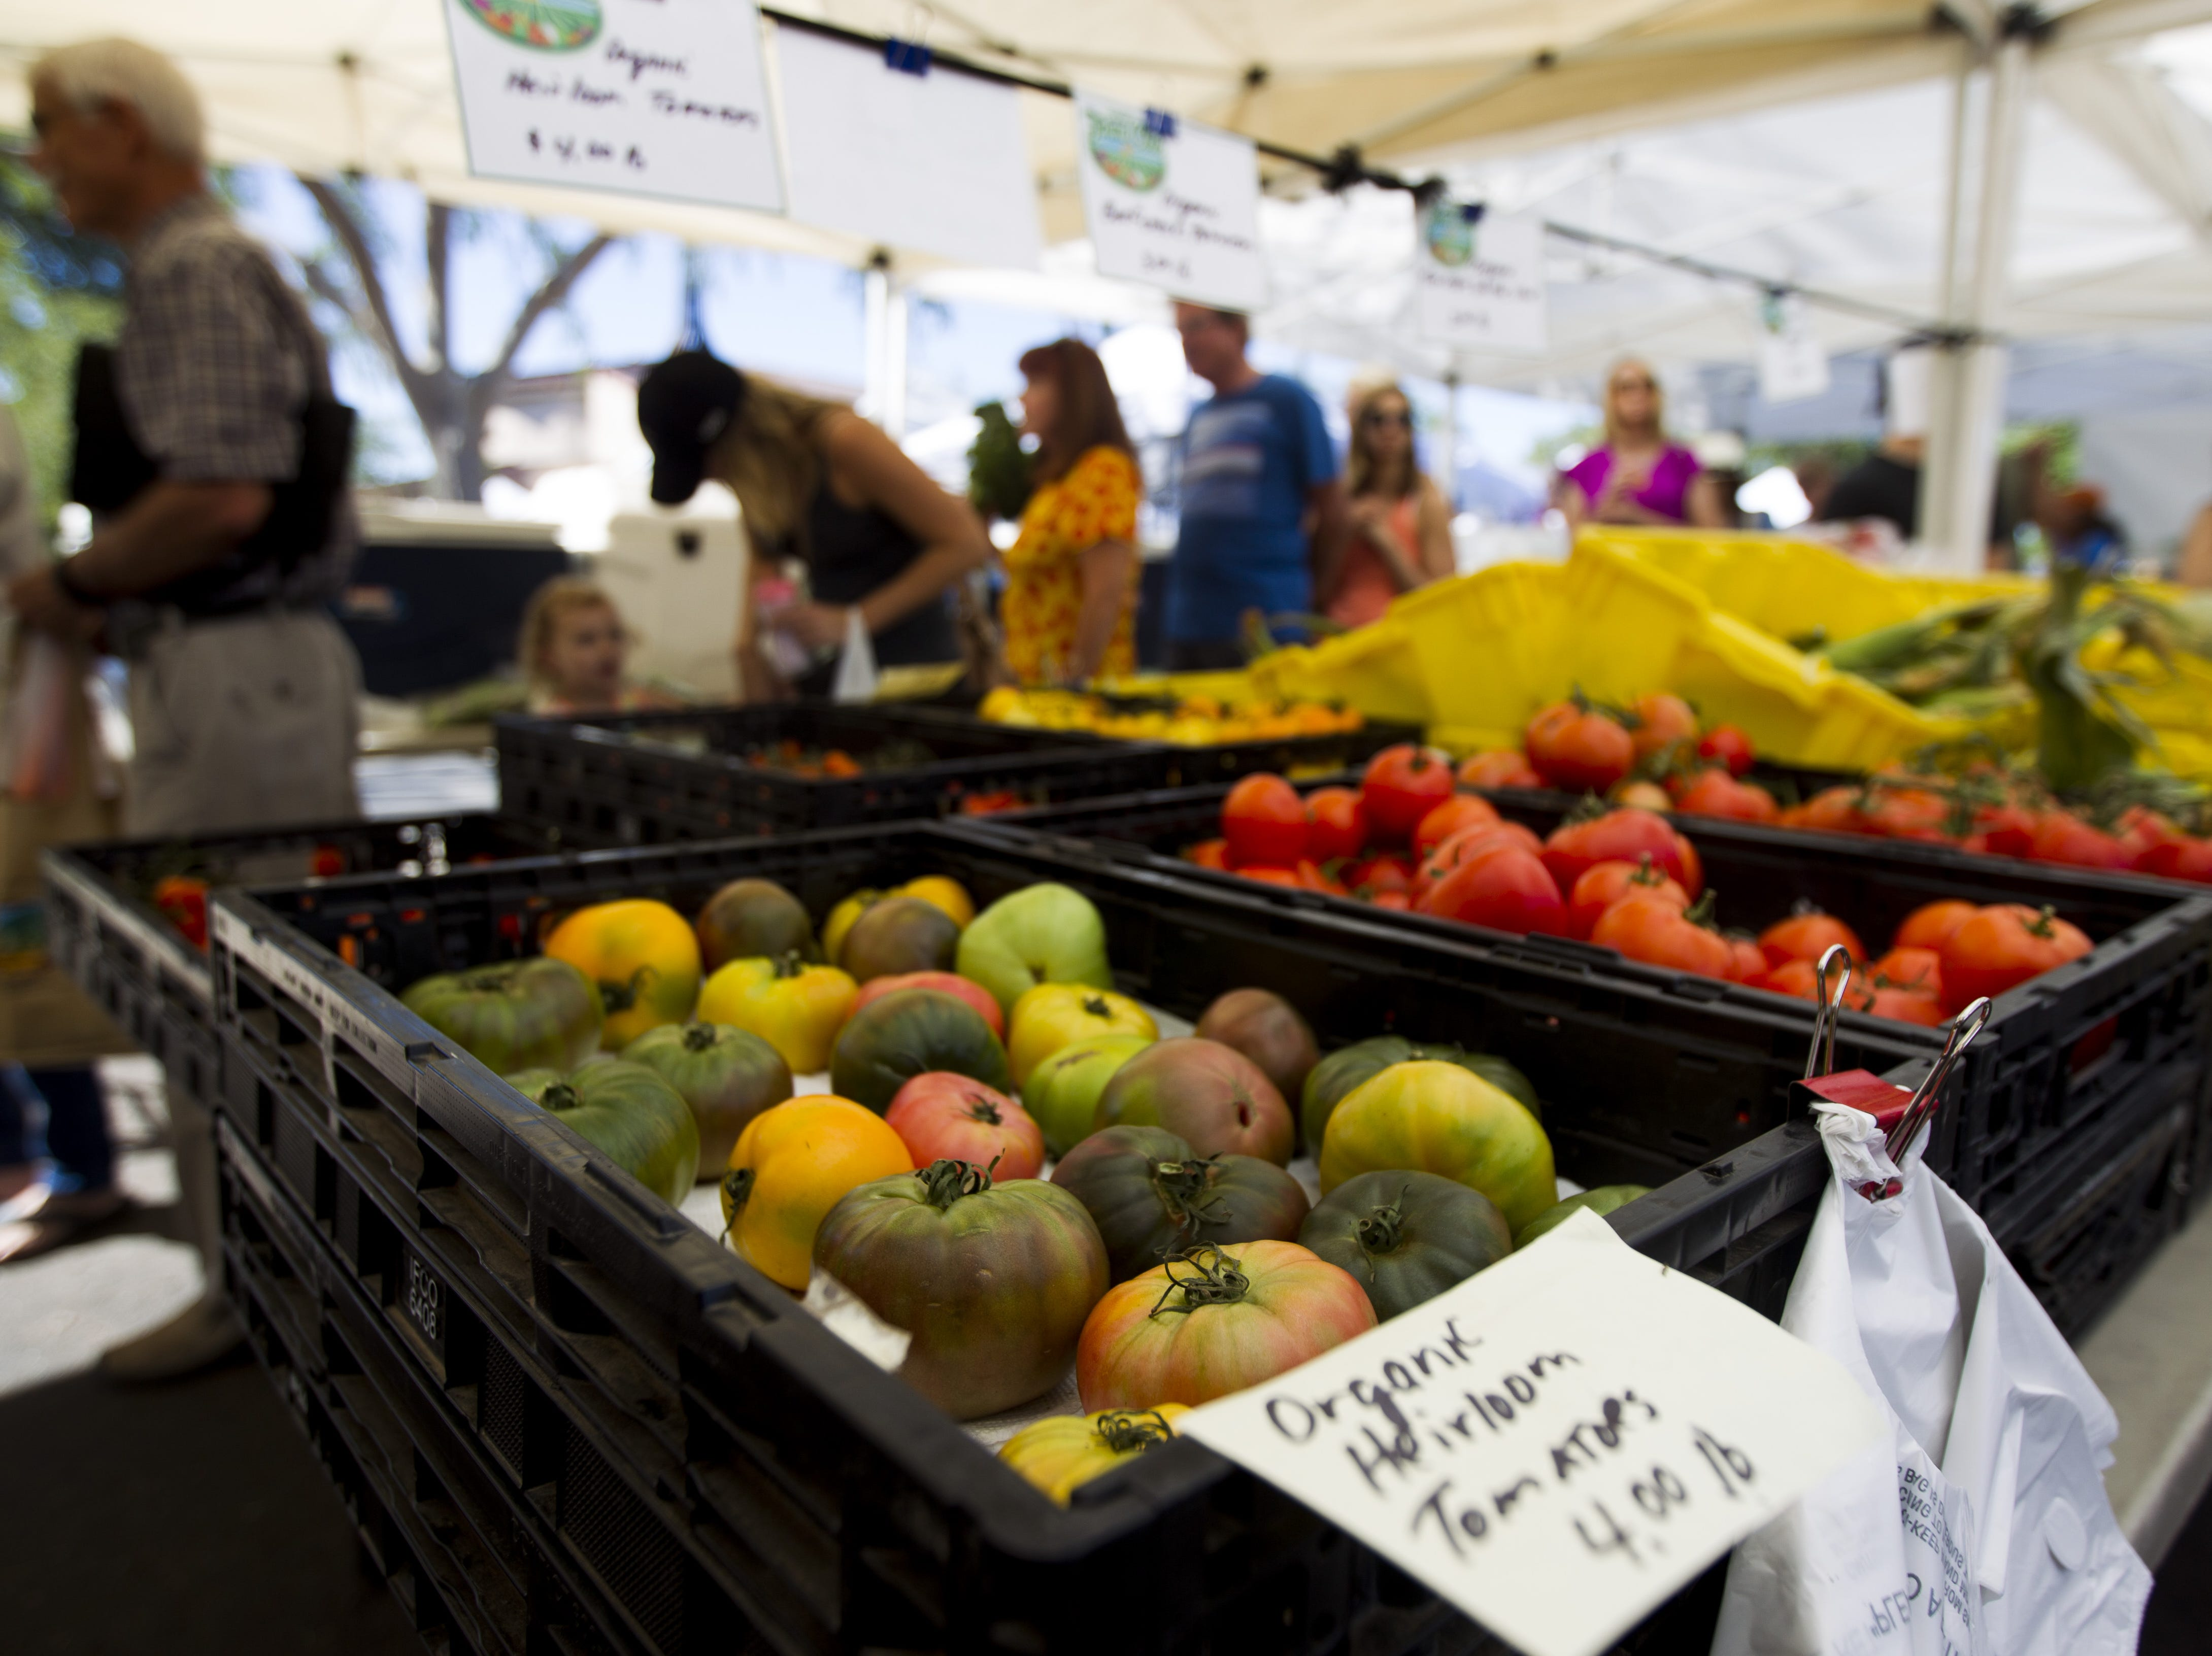 SHOP THE FARMERS MARKET: Check out the bounty grown or created by Arizona farmers and artisans at one of the many farmers markets in the Phoenix area.